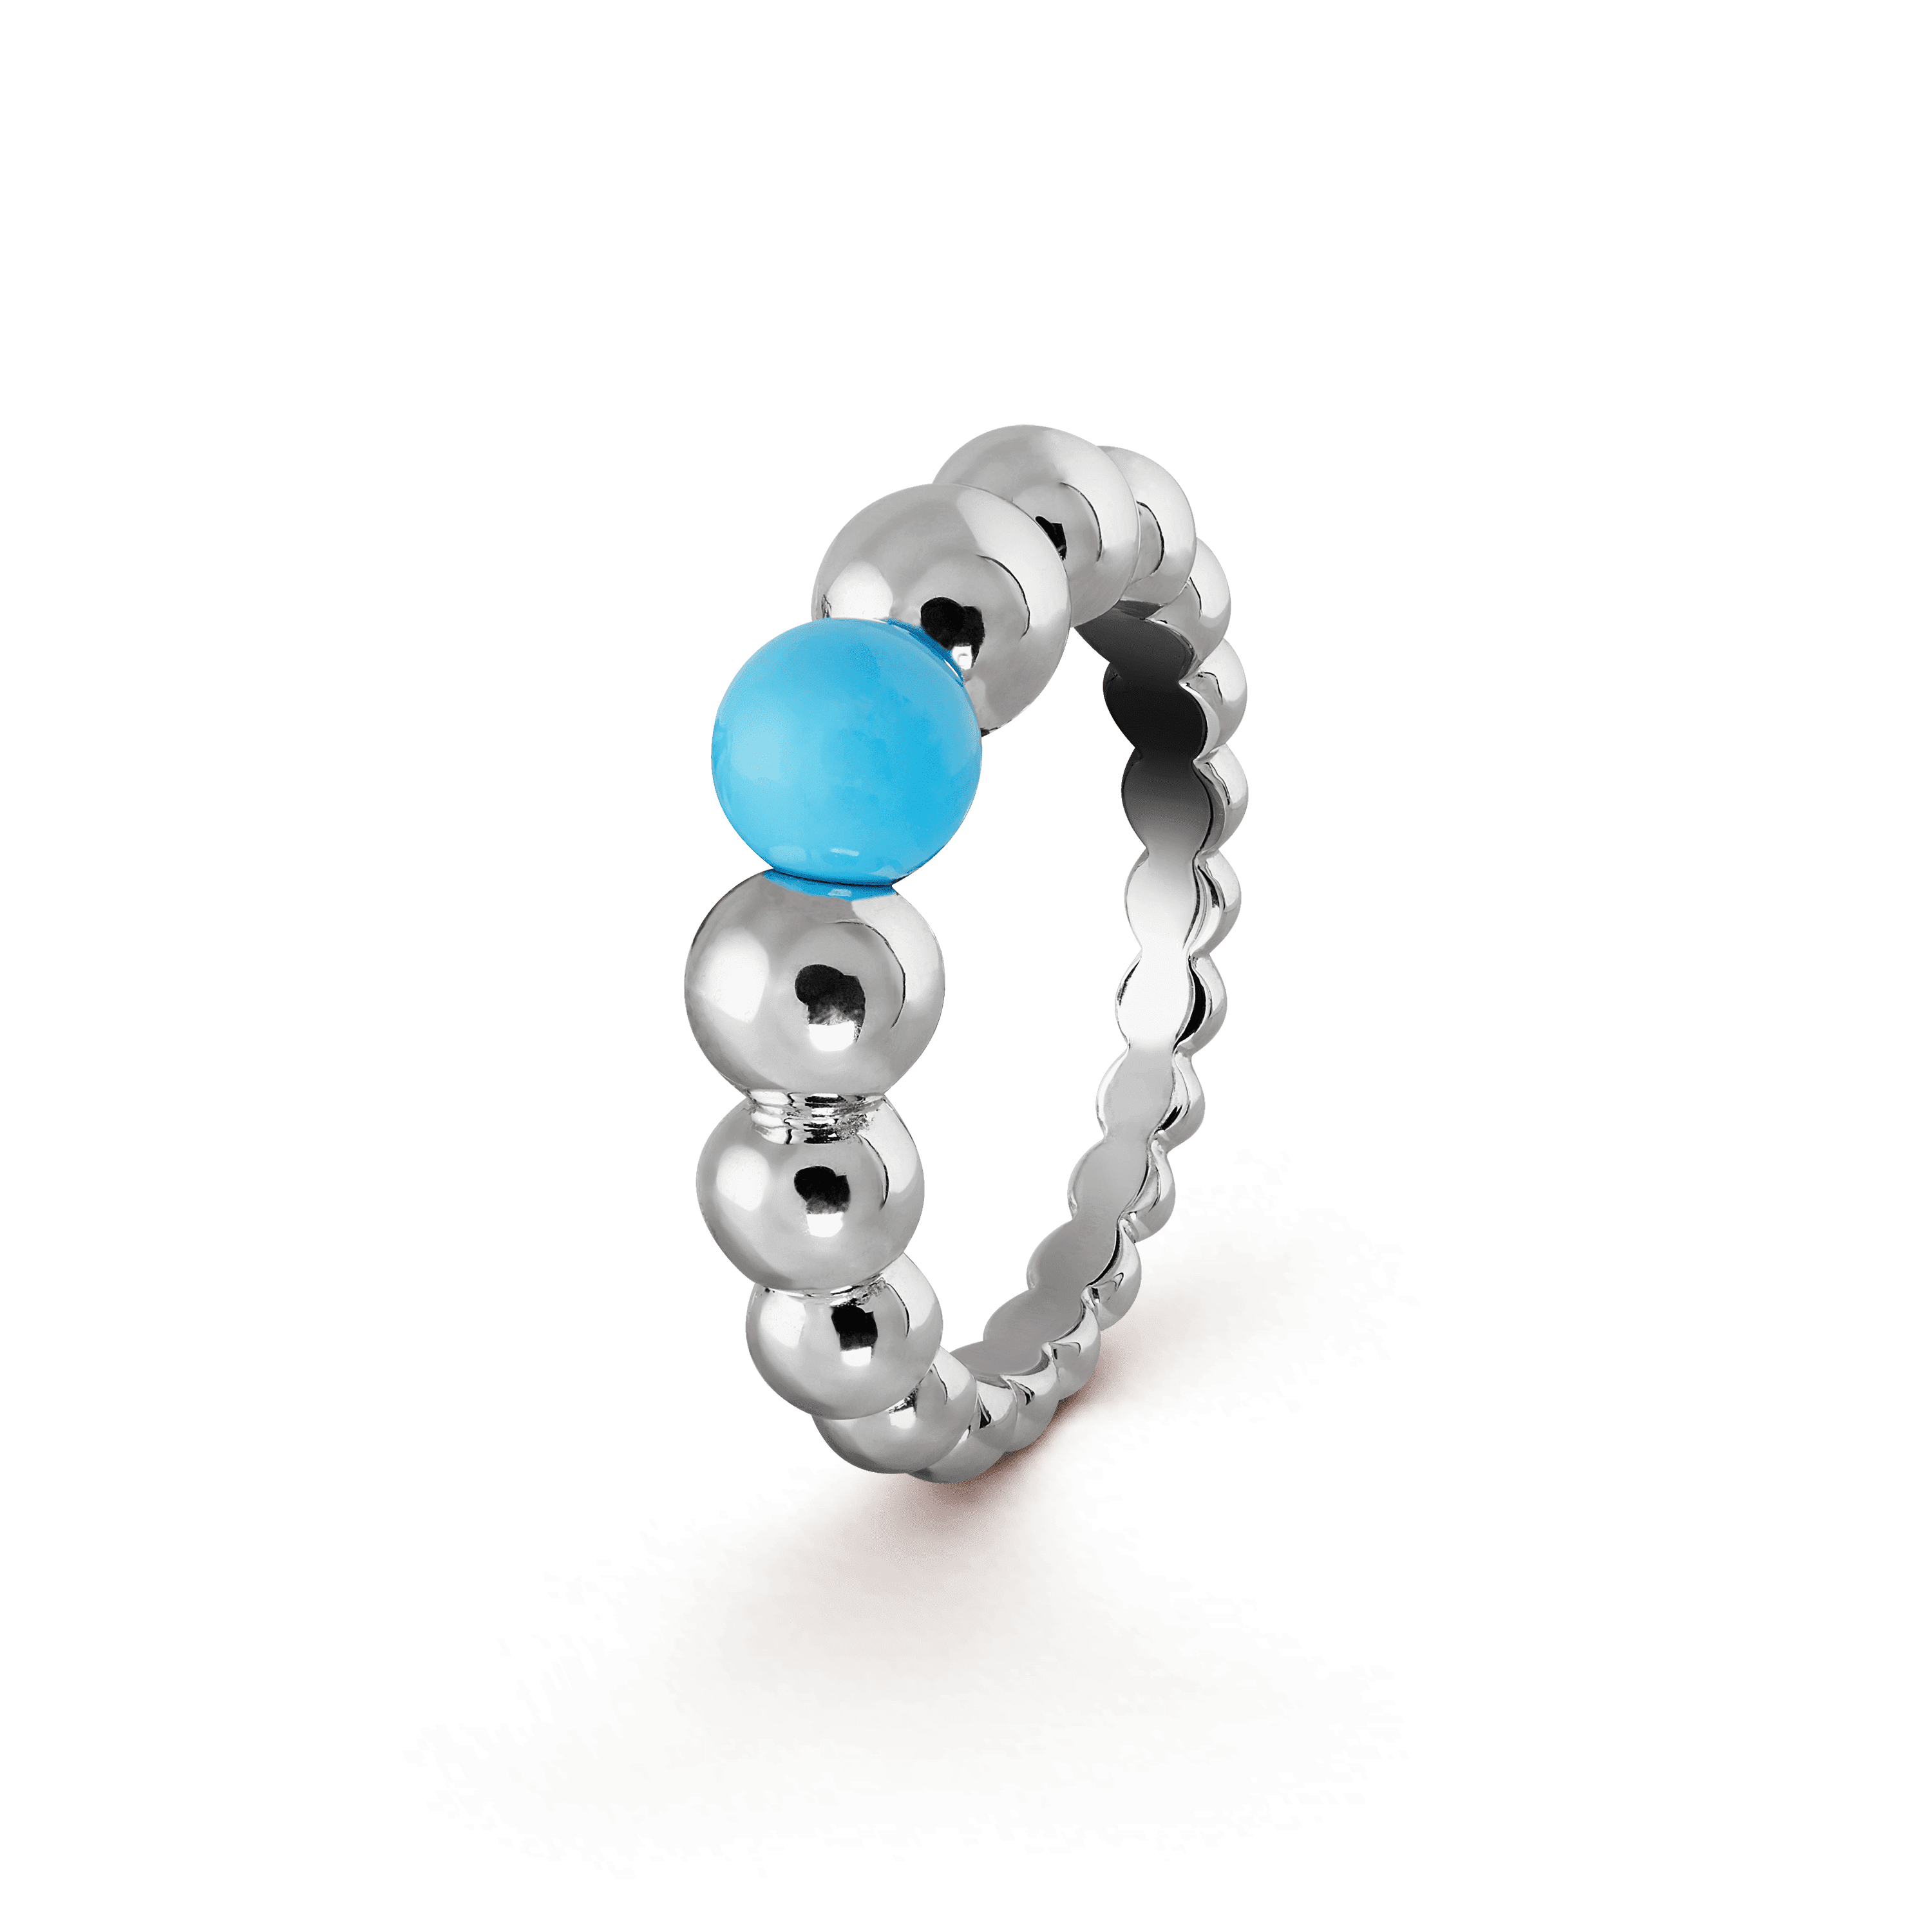 Perlée couleurs variation ring, - 3|4 View - VCARO63G00 - Van Cleef & Arpels